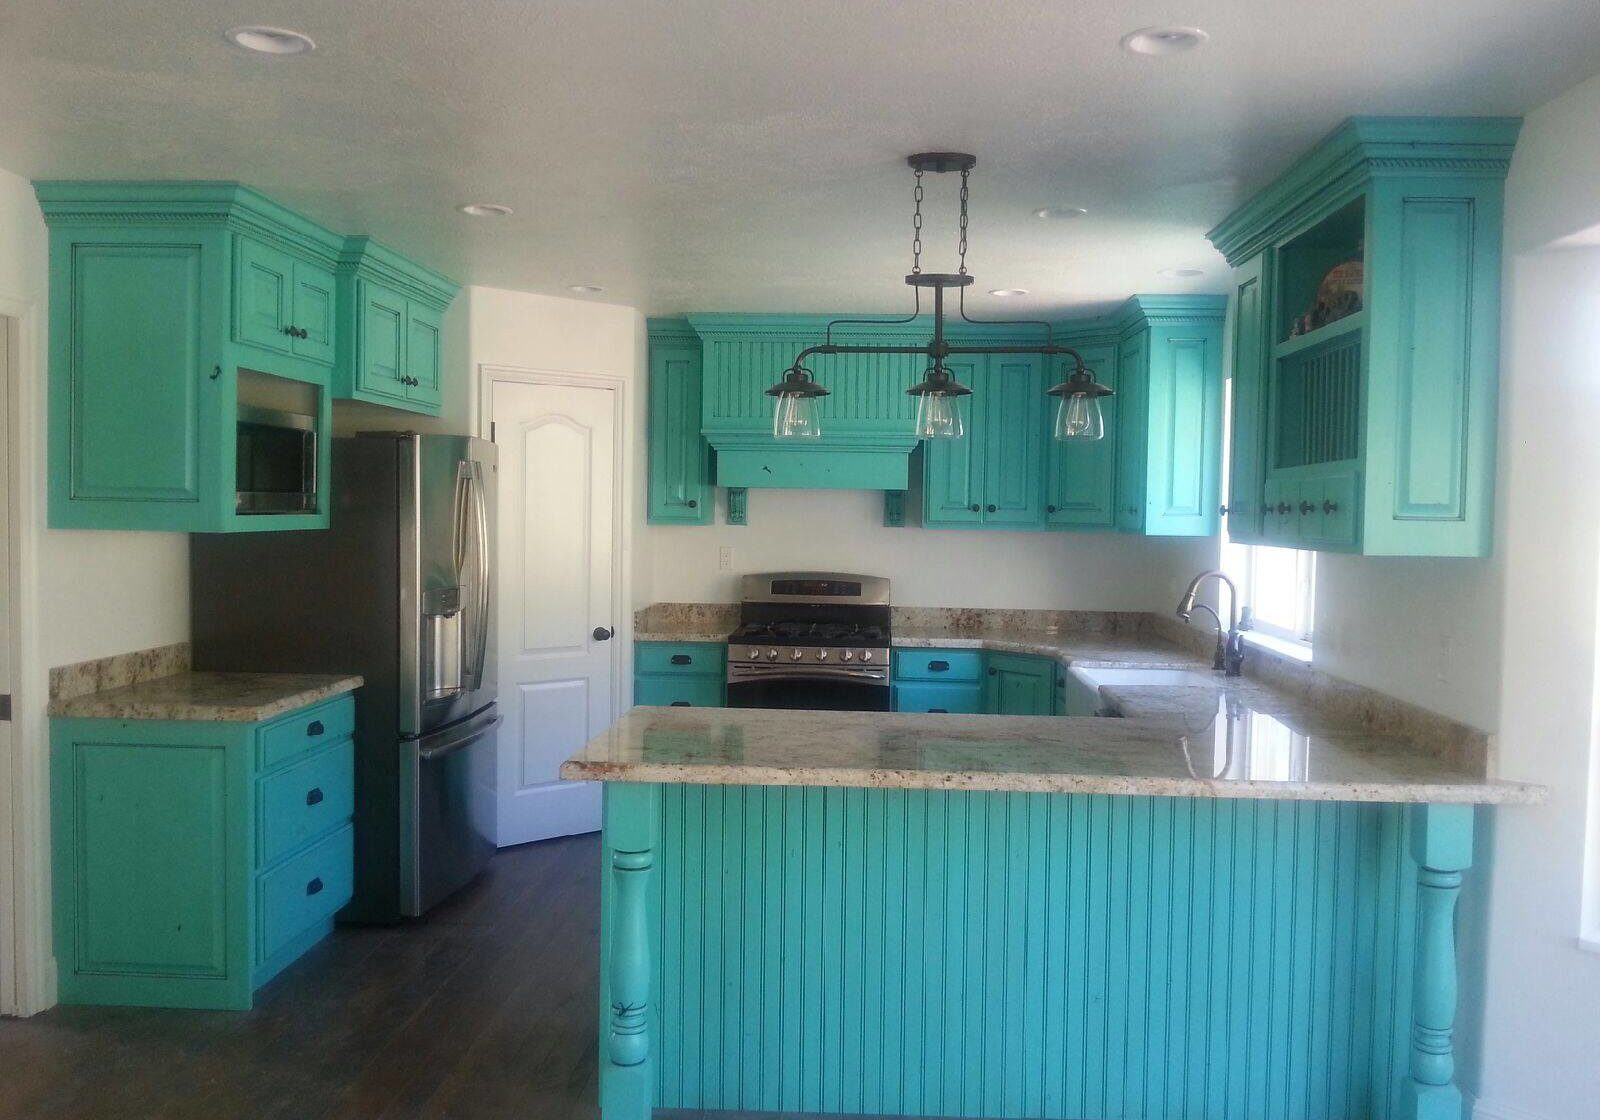 Utah Kitchen Planning And Design Welcome To Creative Cabinets Utah Residential And Commercial Cabinets Cabinet Fixtures Specialists